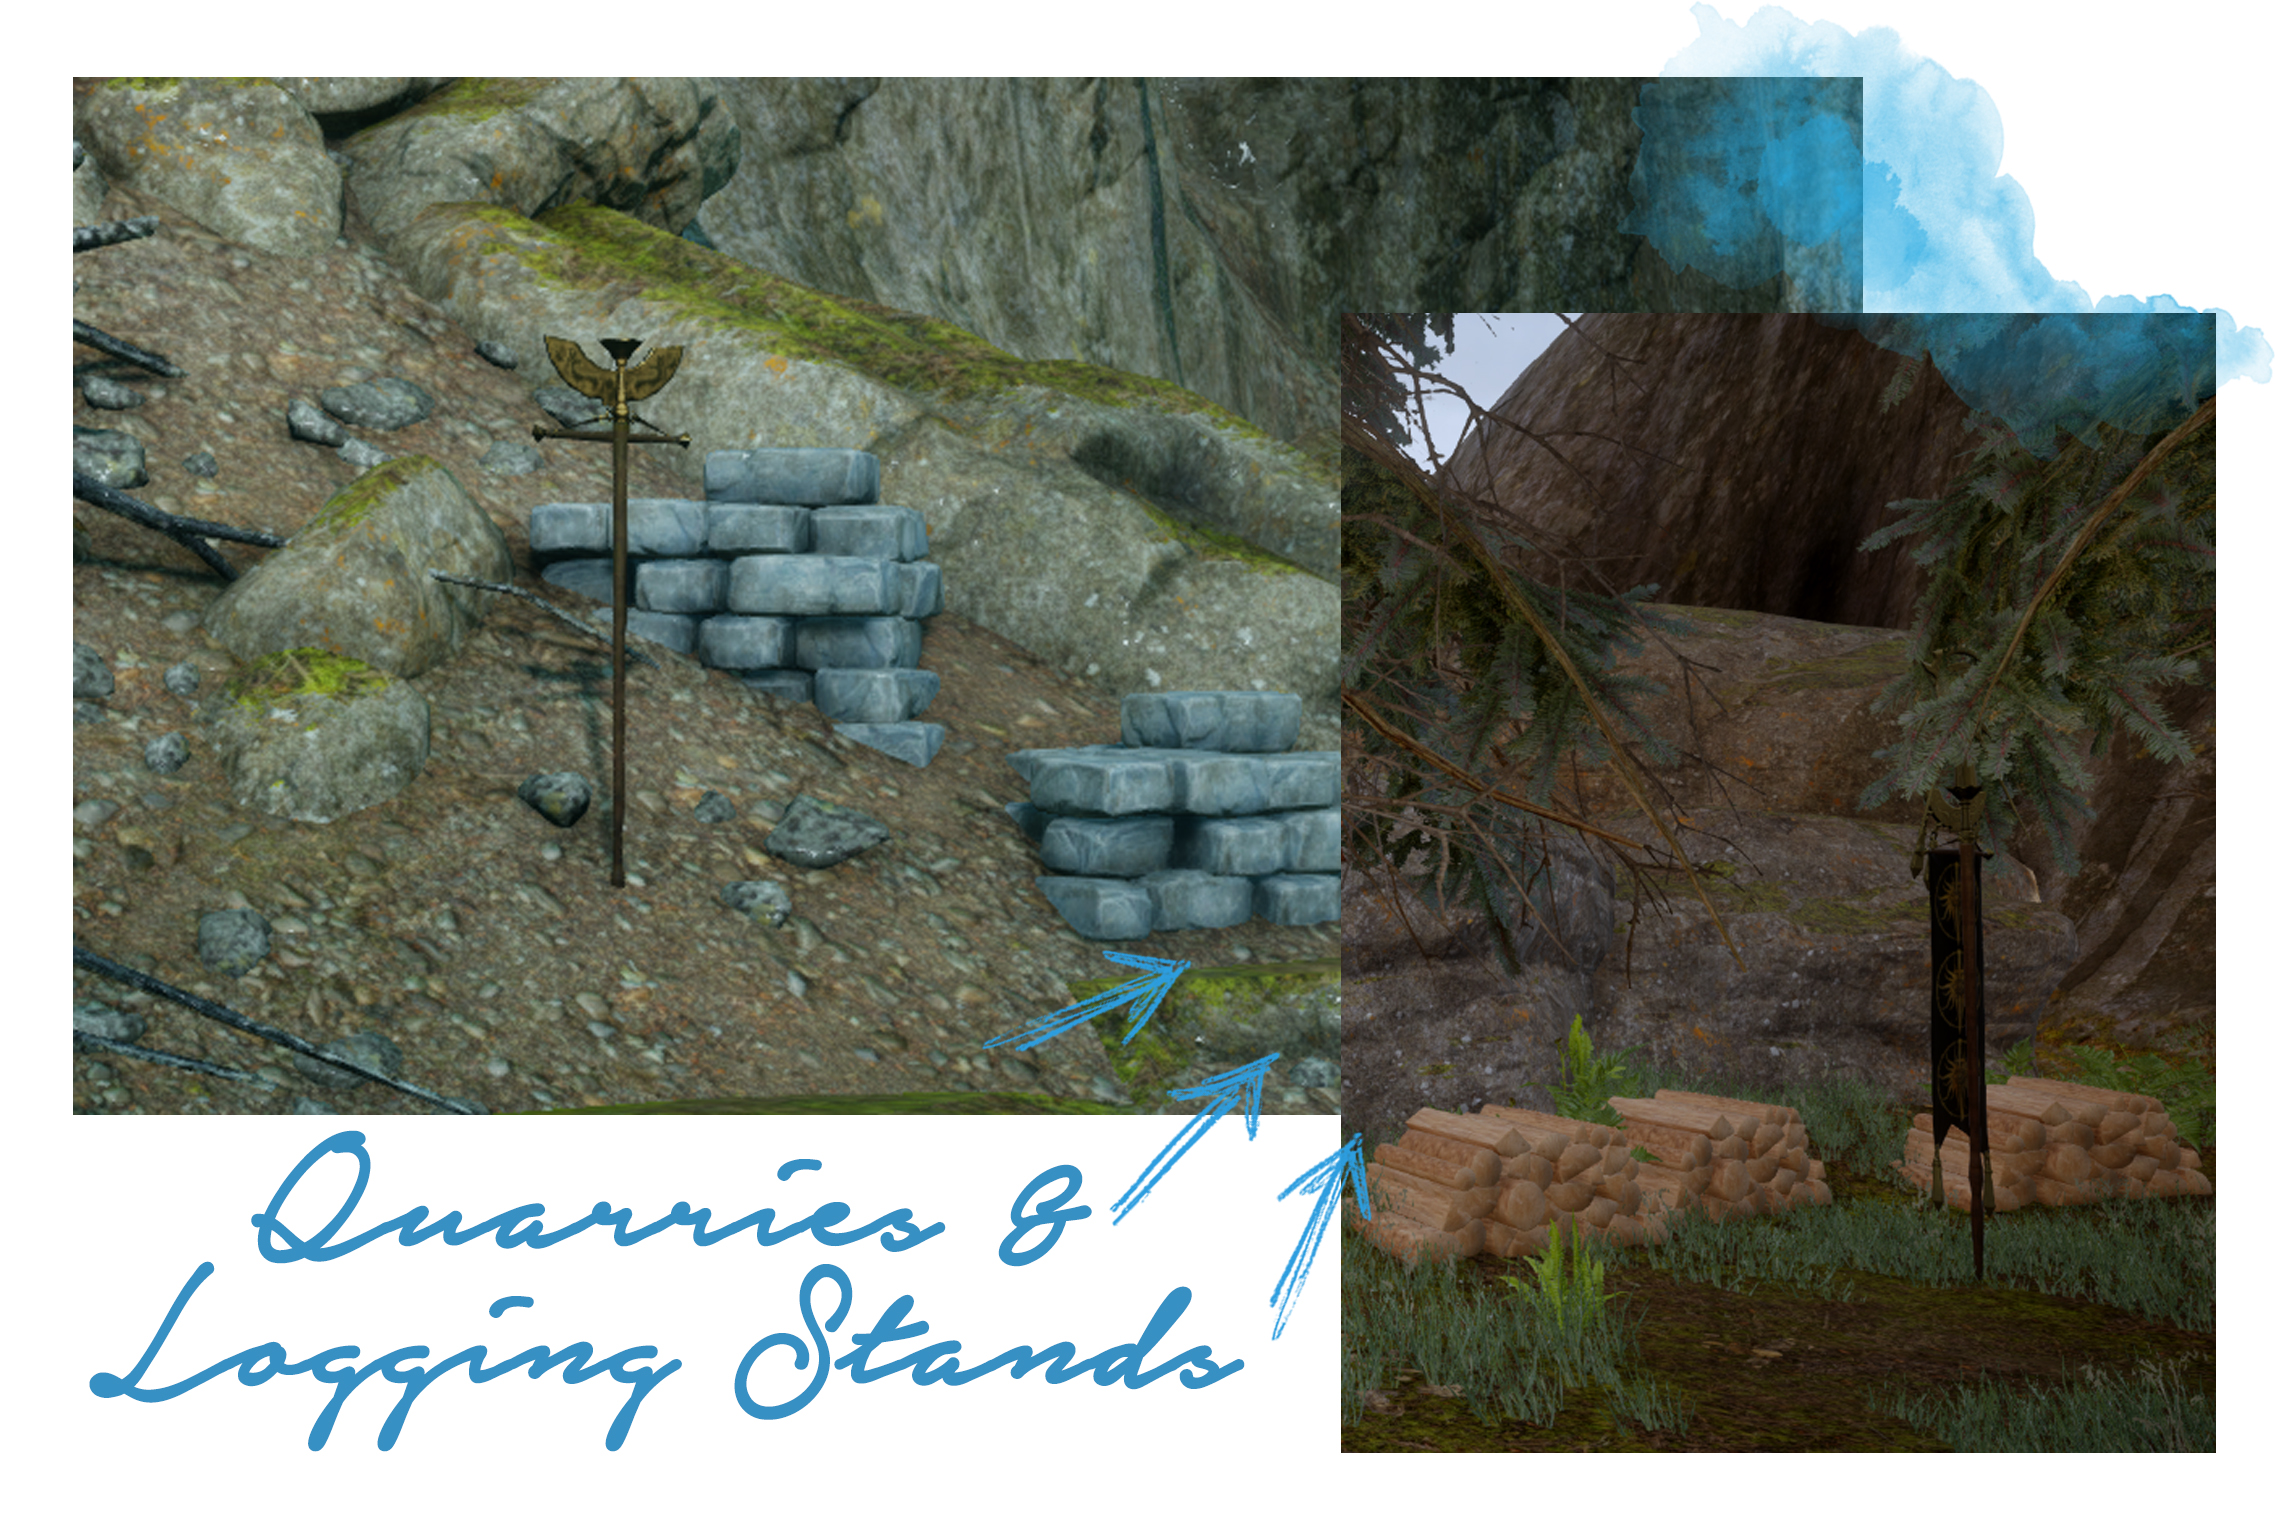 Quarry and Logging Stands